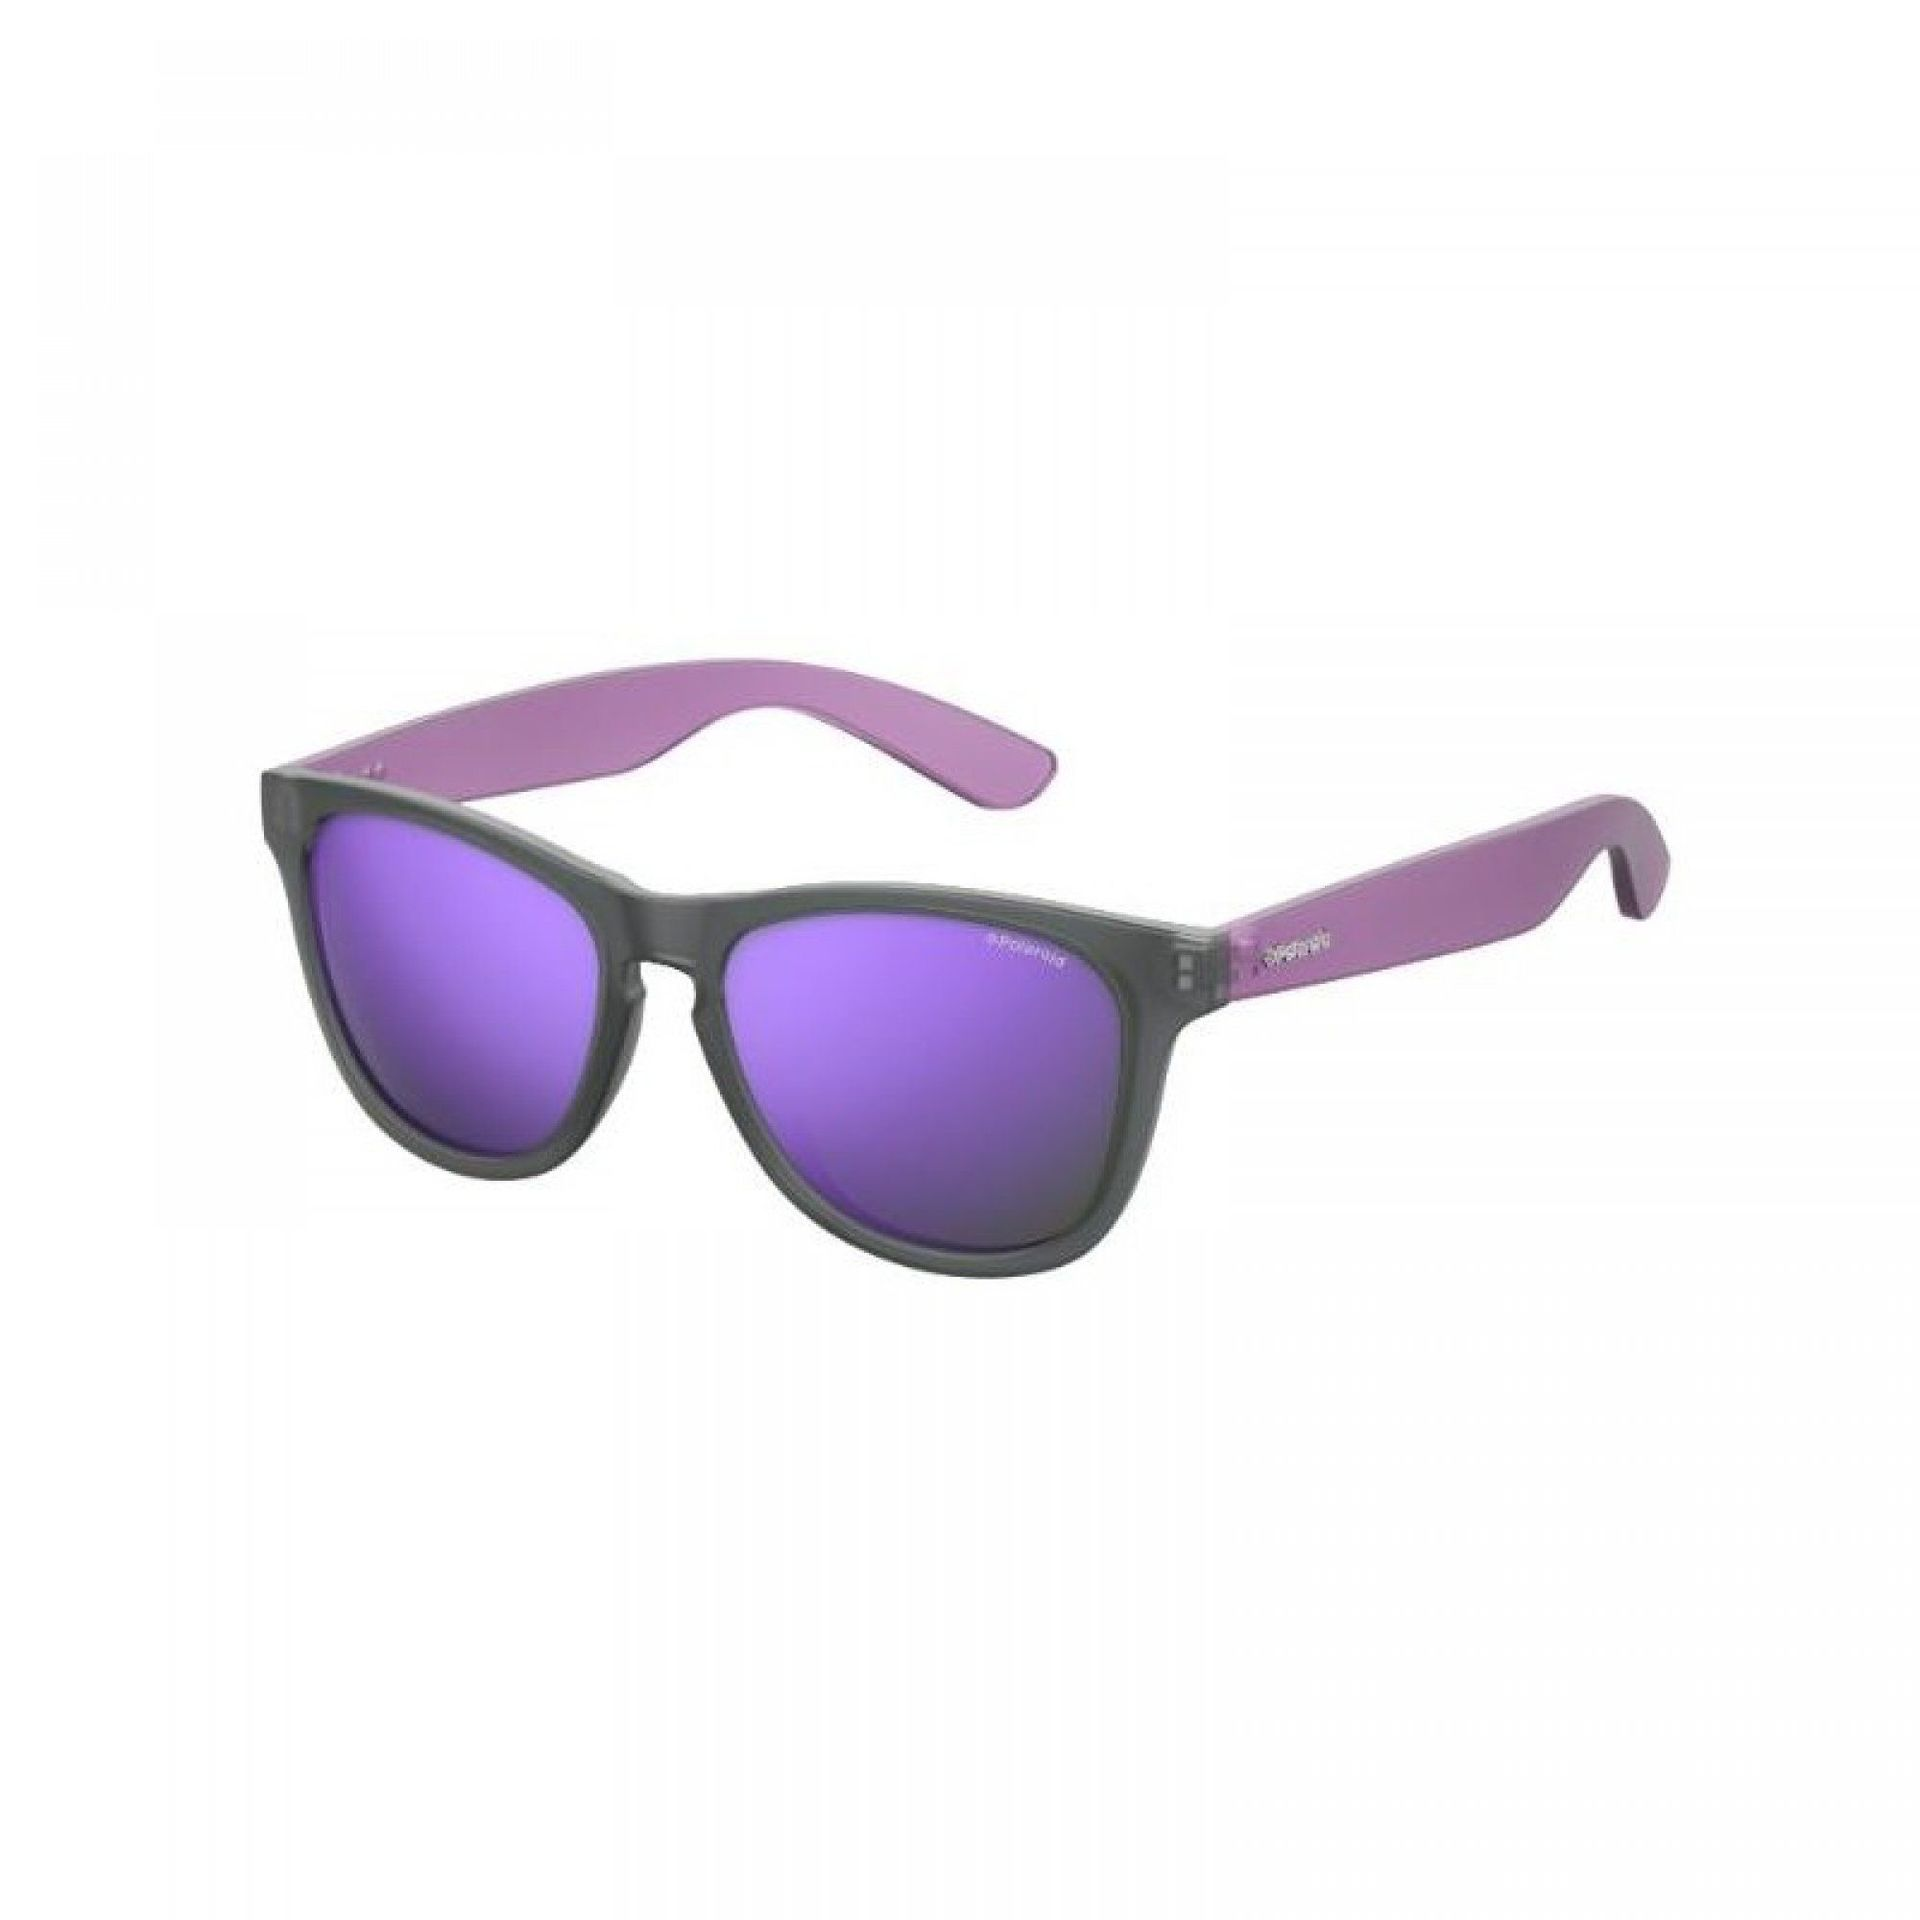 OKULARY POLAROID P8443 GRAY VIOLET